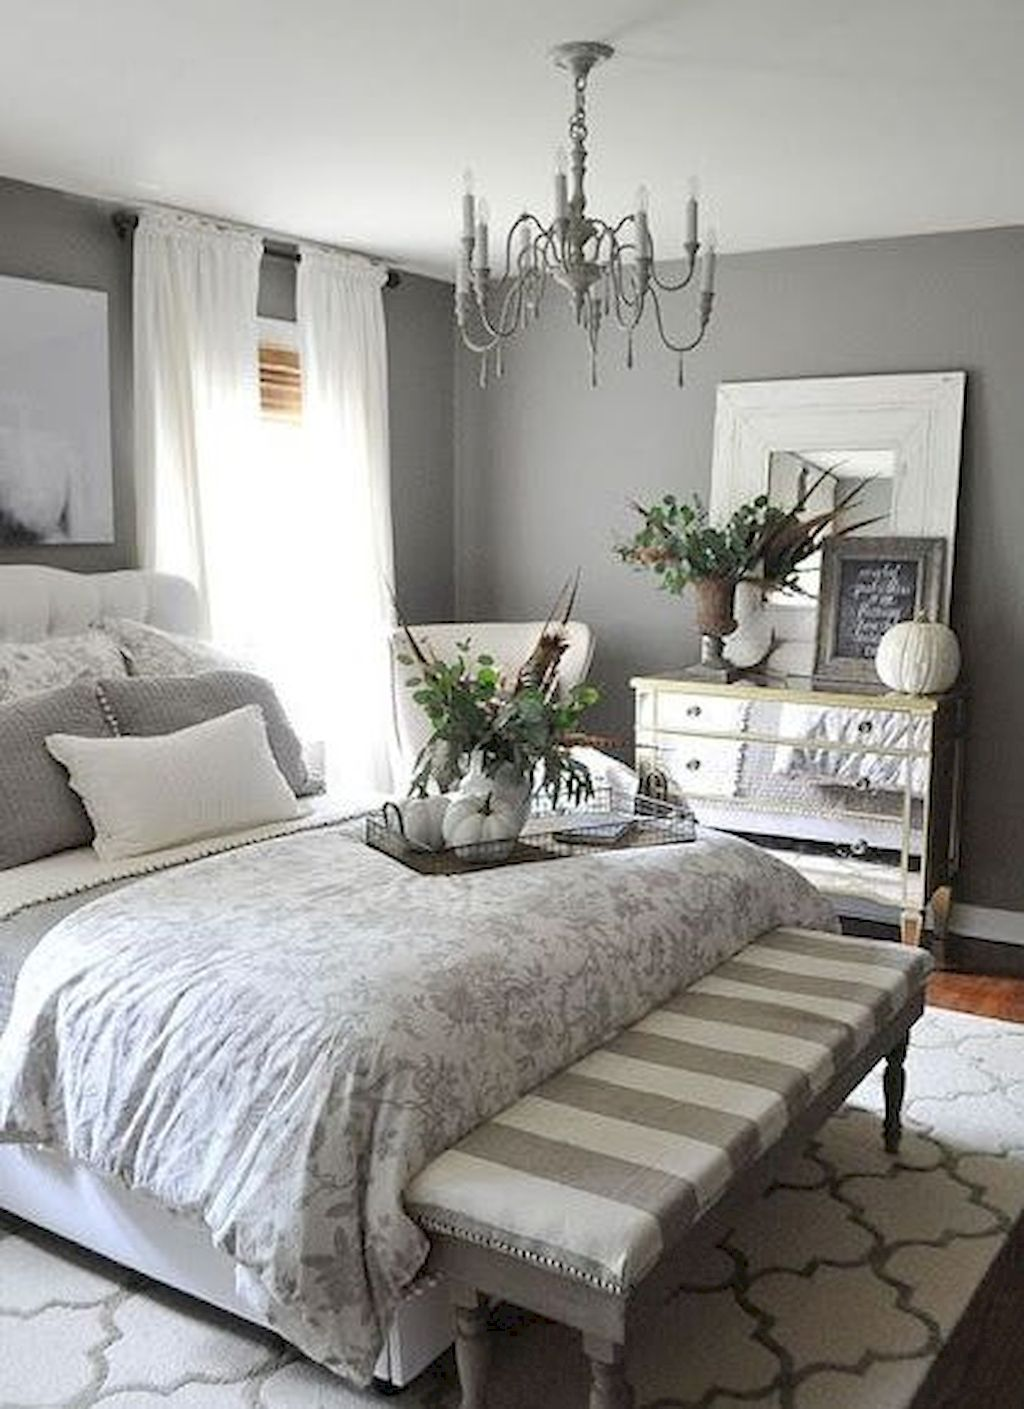 35 Farmhouse Master Bedroom Decorating Ideas | Small ...